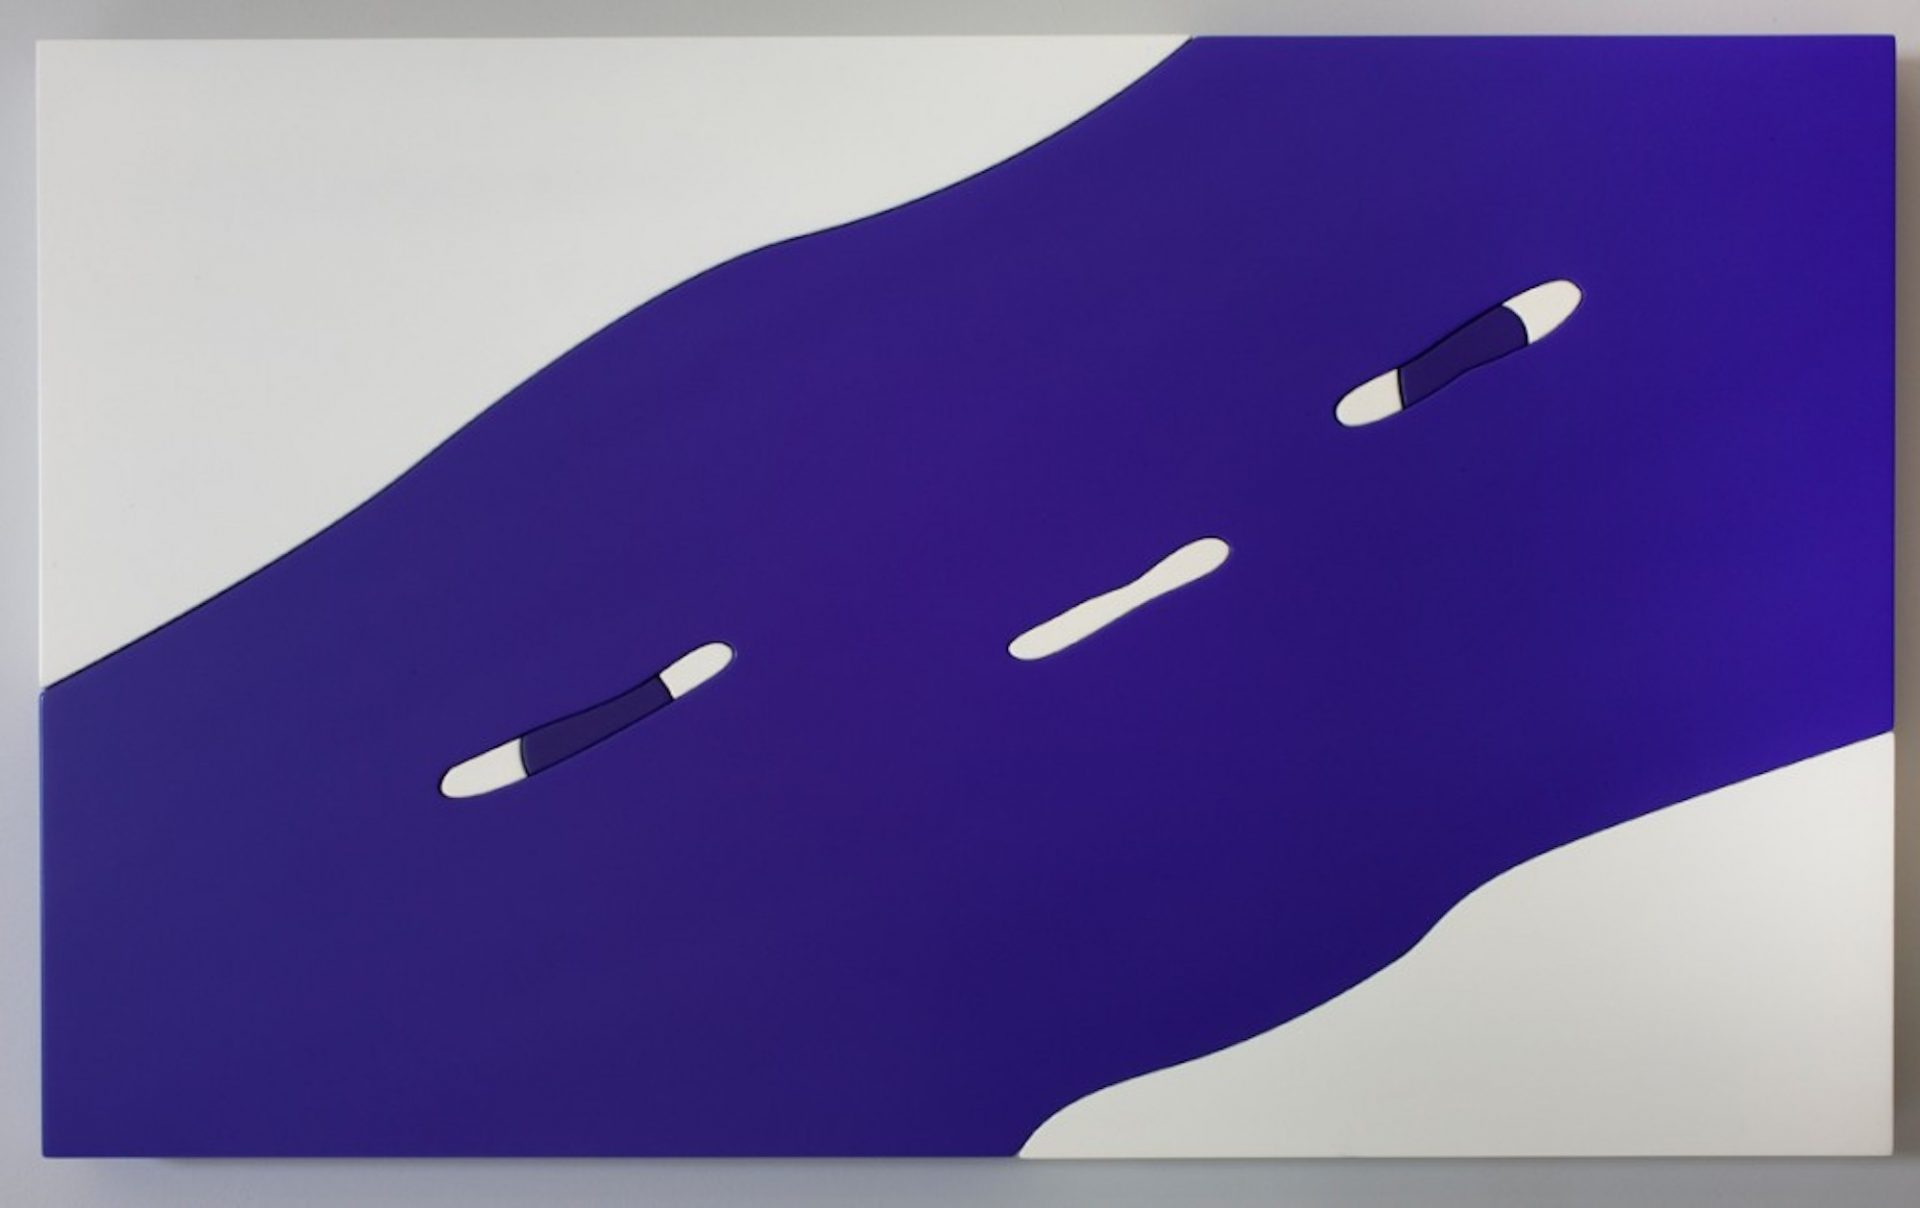 It's Never Enough - Lasercut MDF, car paint, acrylic, 25 inches x 42 inches, 2011